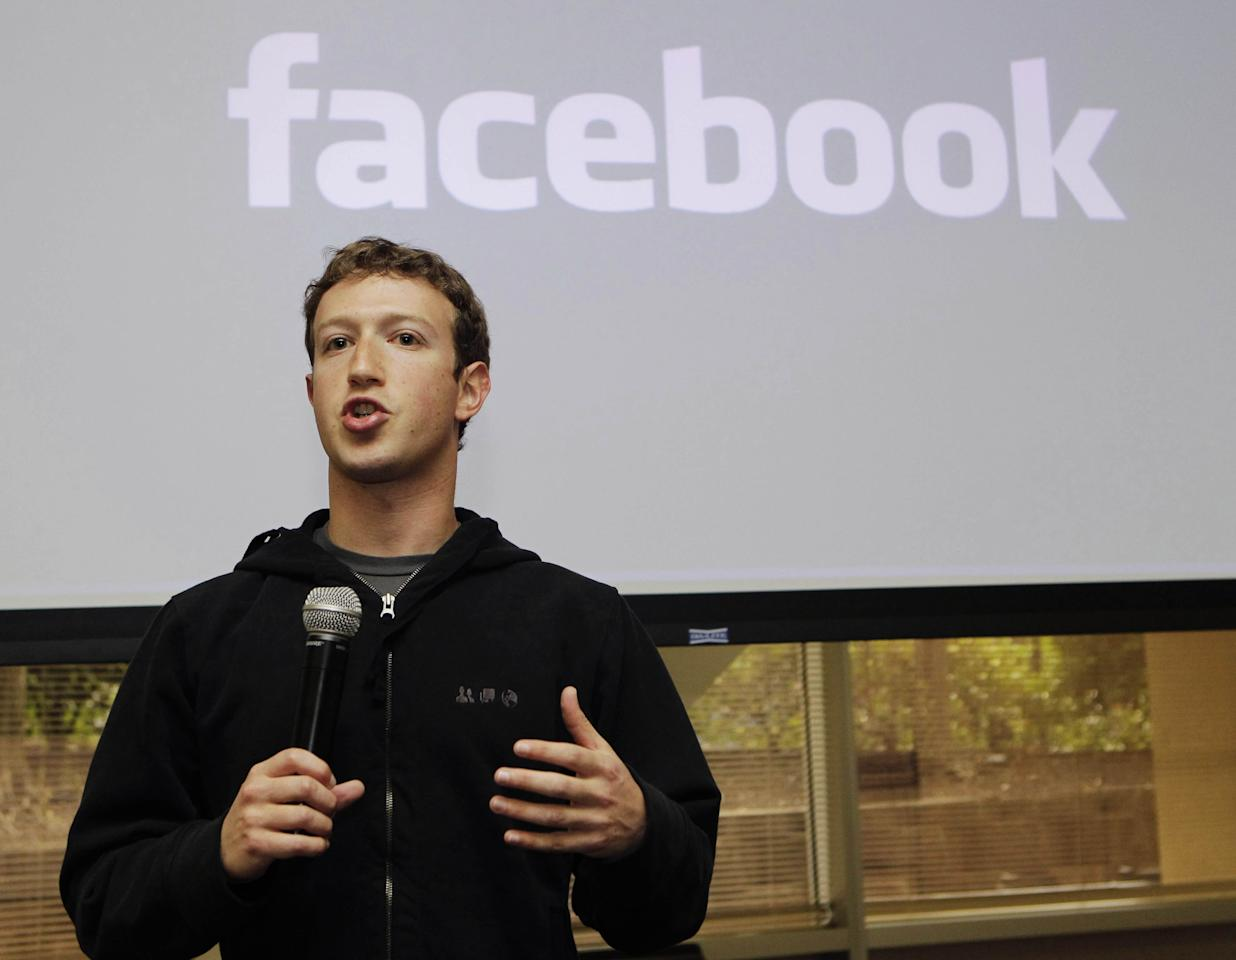 """FILE - In this May, 26, 2010 file photo, Facebook CEO Mark Zuckerberg talks about the social network site's new privacy settings in Palo Alto, Calif. Zuckerberg turns up at business conventions in a hoodie. """"Cocky"""" is the word used to describe him most often, after """"billionaire."""" He was Time's person of the year at 26. So when he takes Facebook public, why would he follow the Wall Street rules? The company is expected to file as early as Wednesday, Feb. 1, 2012 to sell stock on the open market in what will be the most talked-about initial public offering since Google in 2004, maybe since the go-go 1990s. Around the nation, regular investors and IPO watchers are anticipating some kind of twist - perhaps a provision for the 800 million users of Facebook, a company that promotes itself as all about personal connections, to get in on the action. (AP Photo/Marcio Jose Sanchez, File)"""